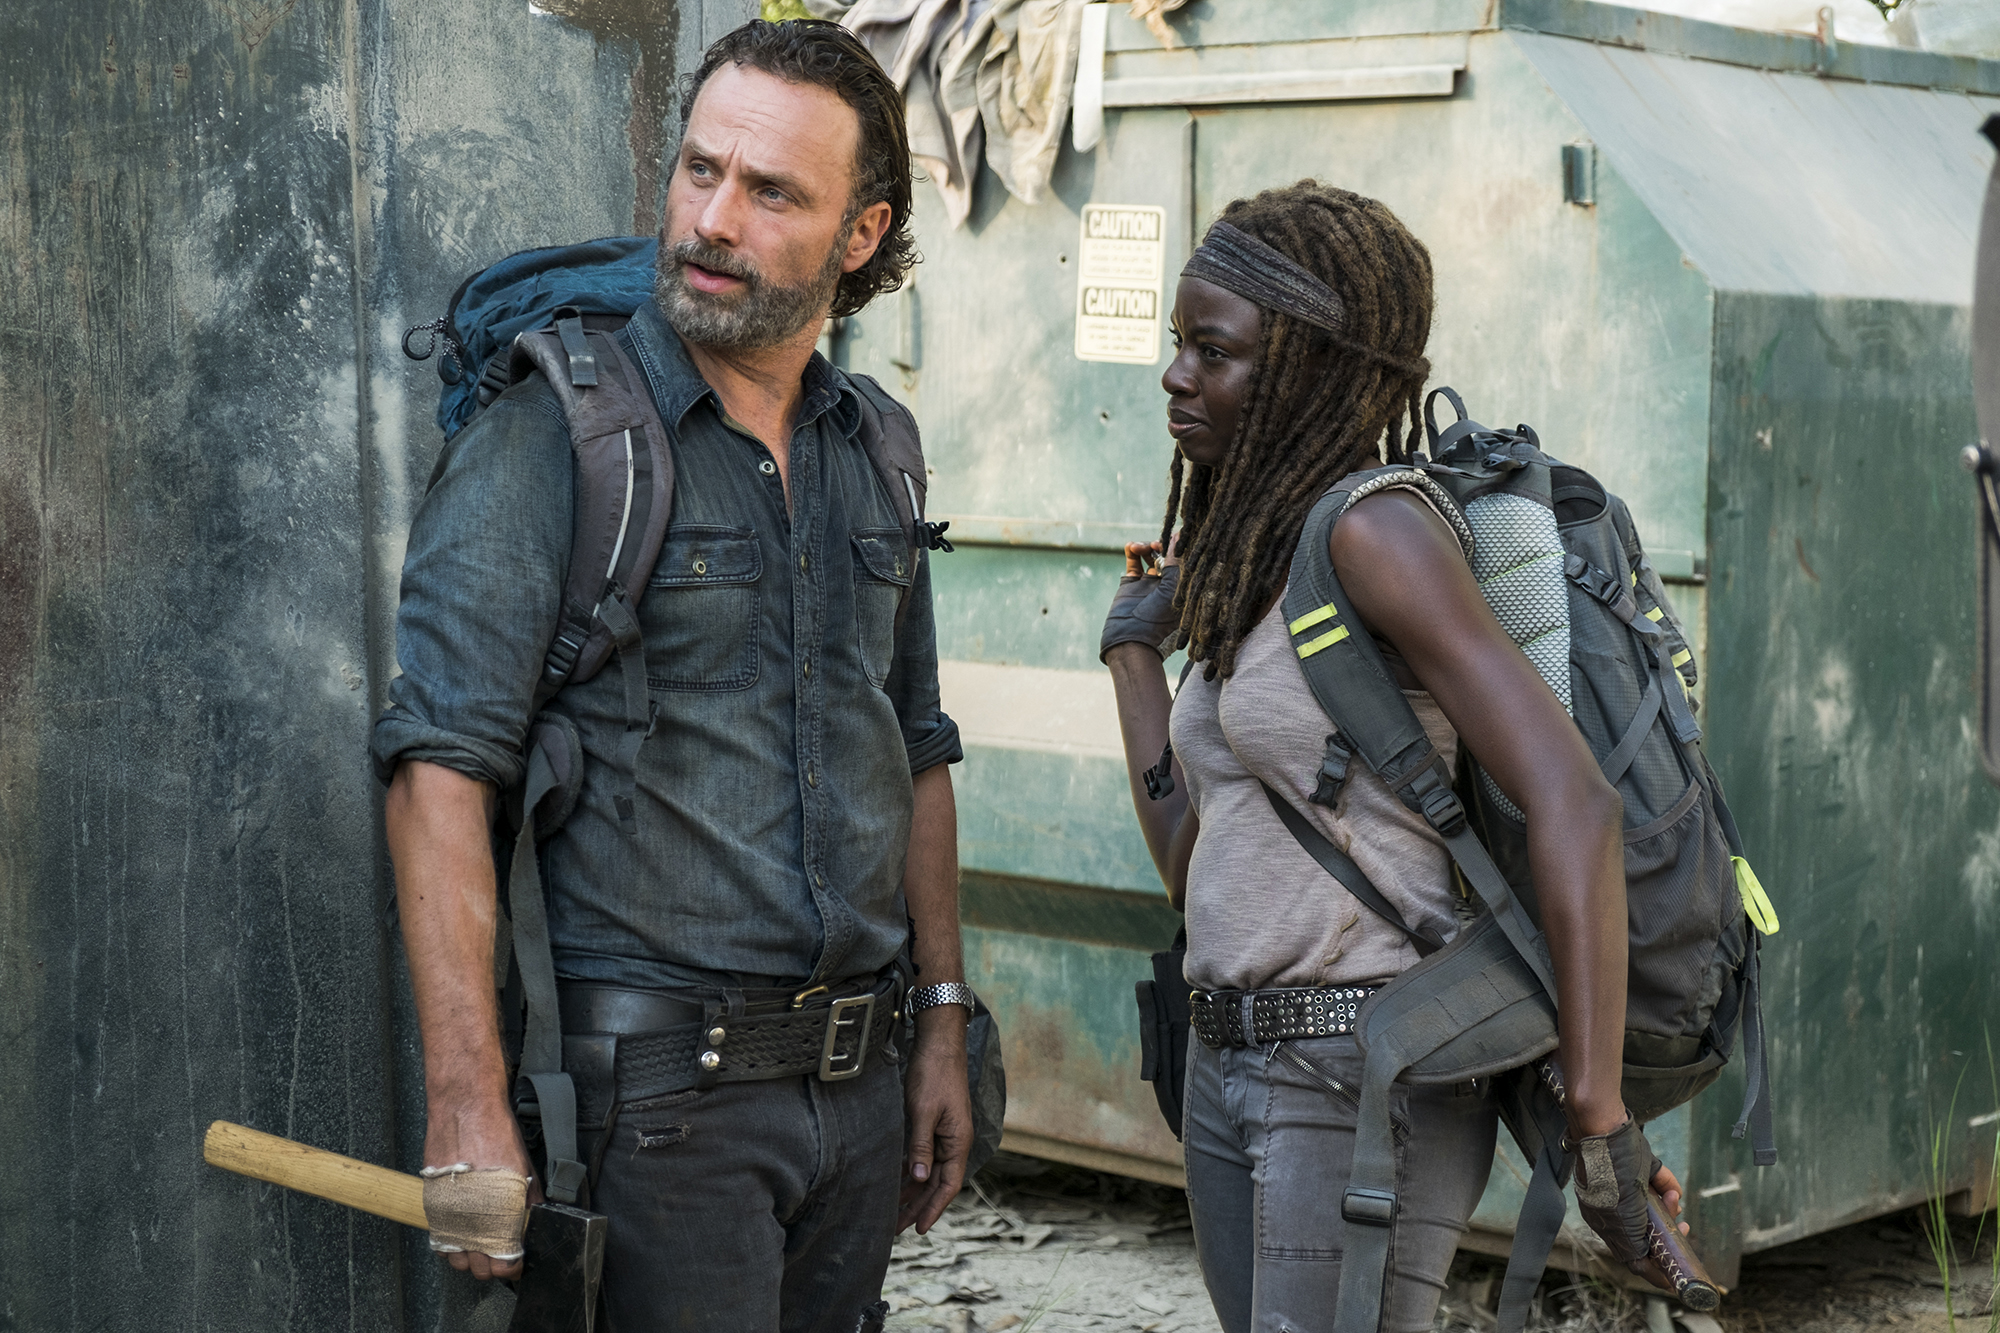 Andrew Lincoln as Rick Grimes, Danai Gurira as Michonne - The Walking Dead, Season 7, Episode 12